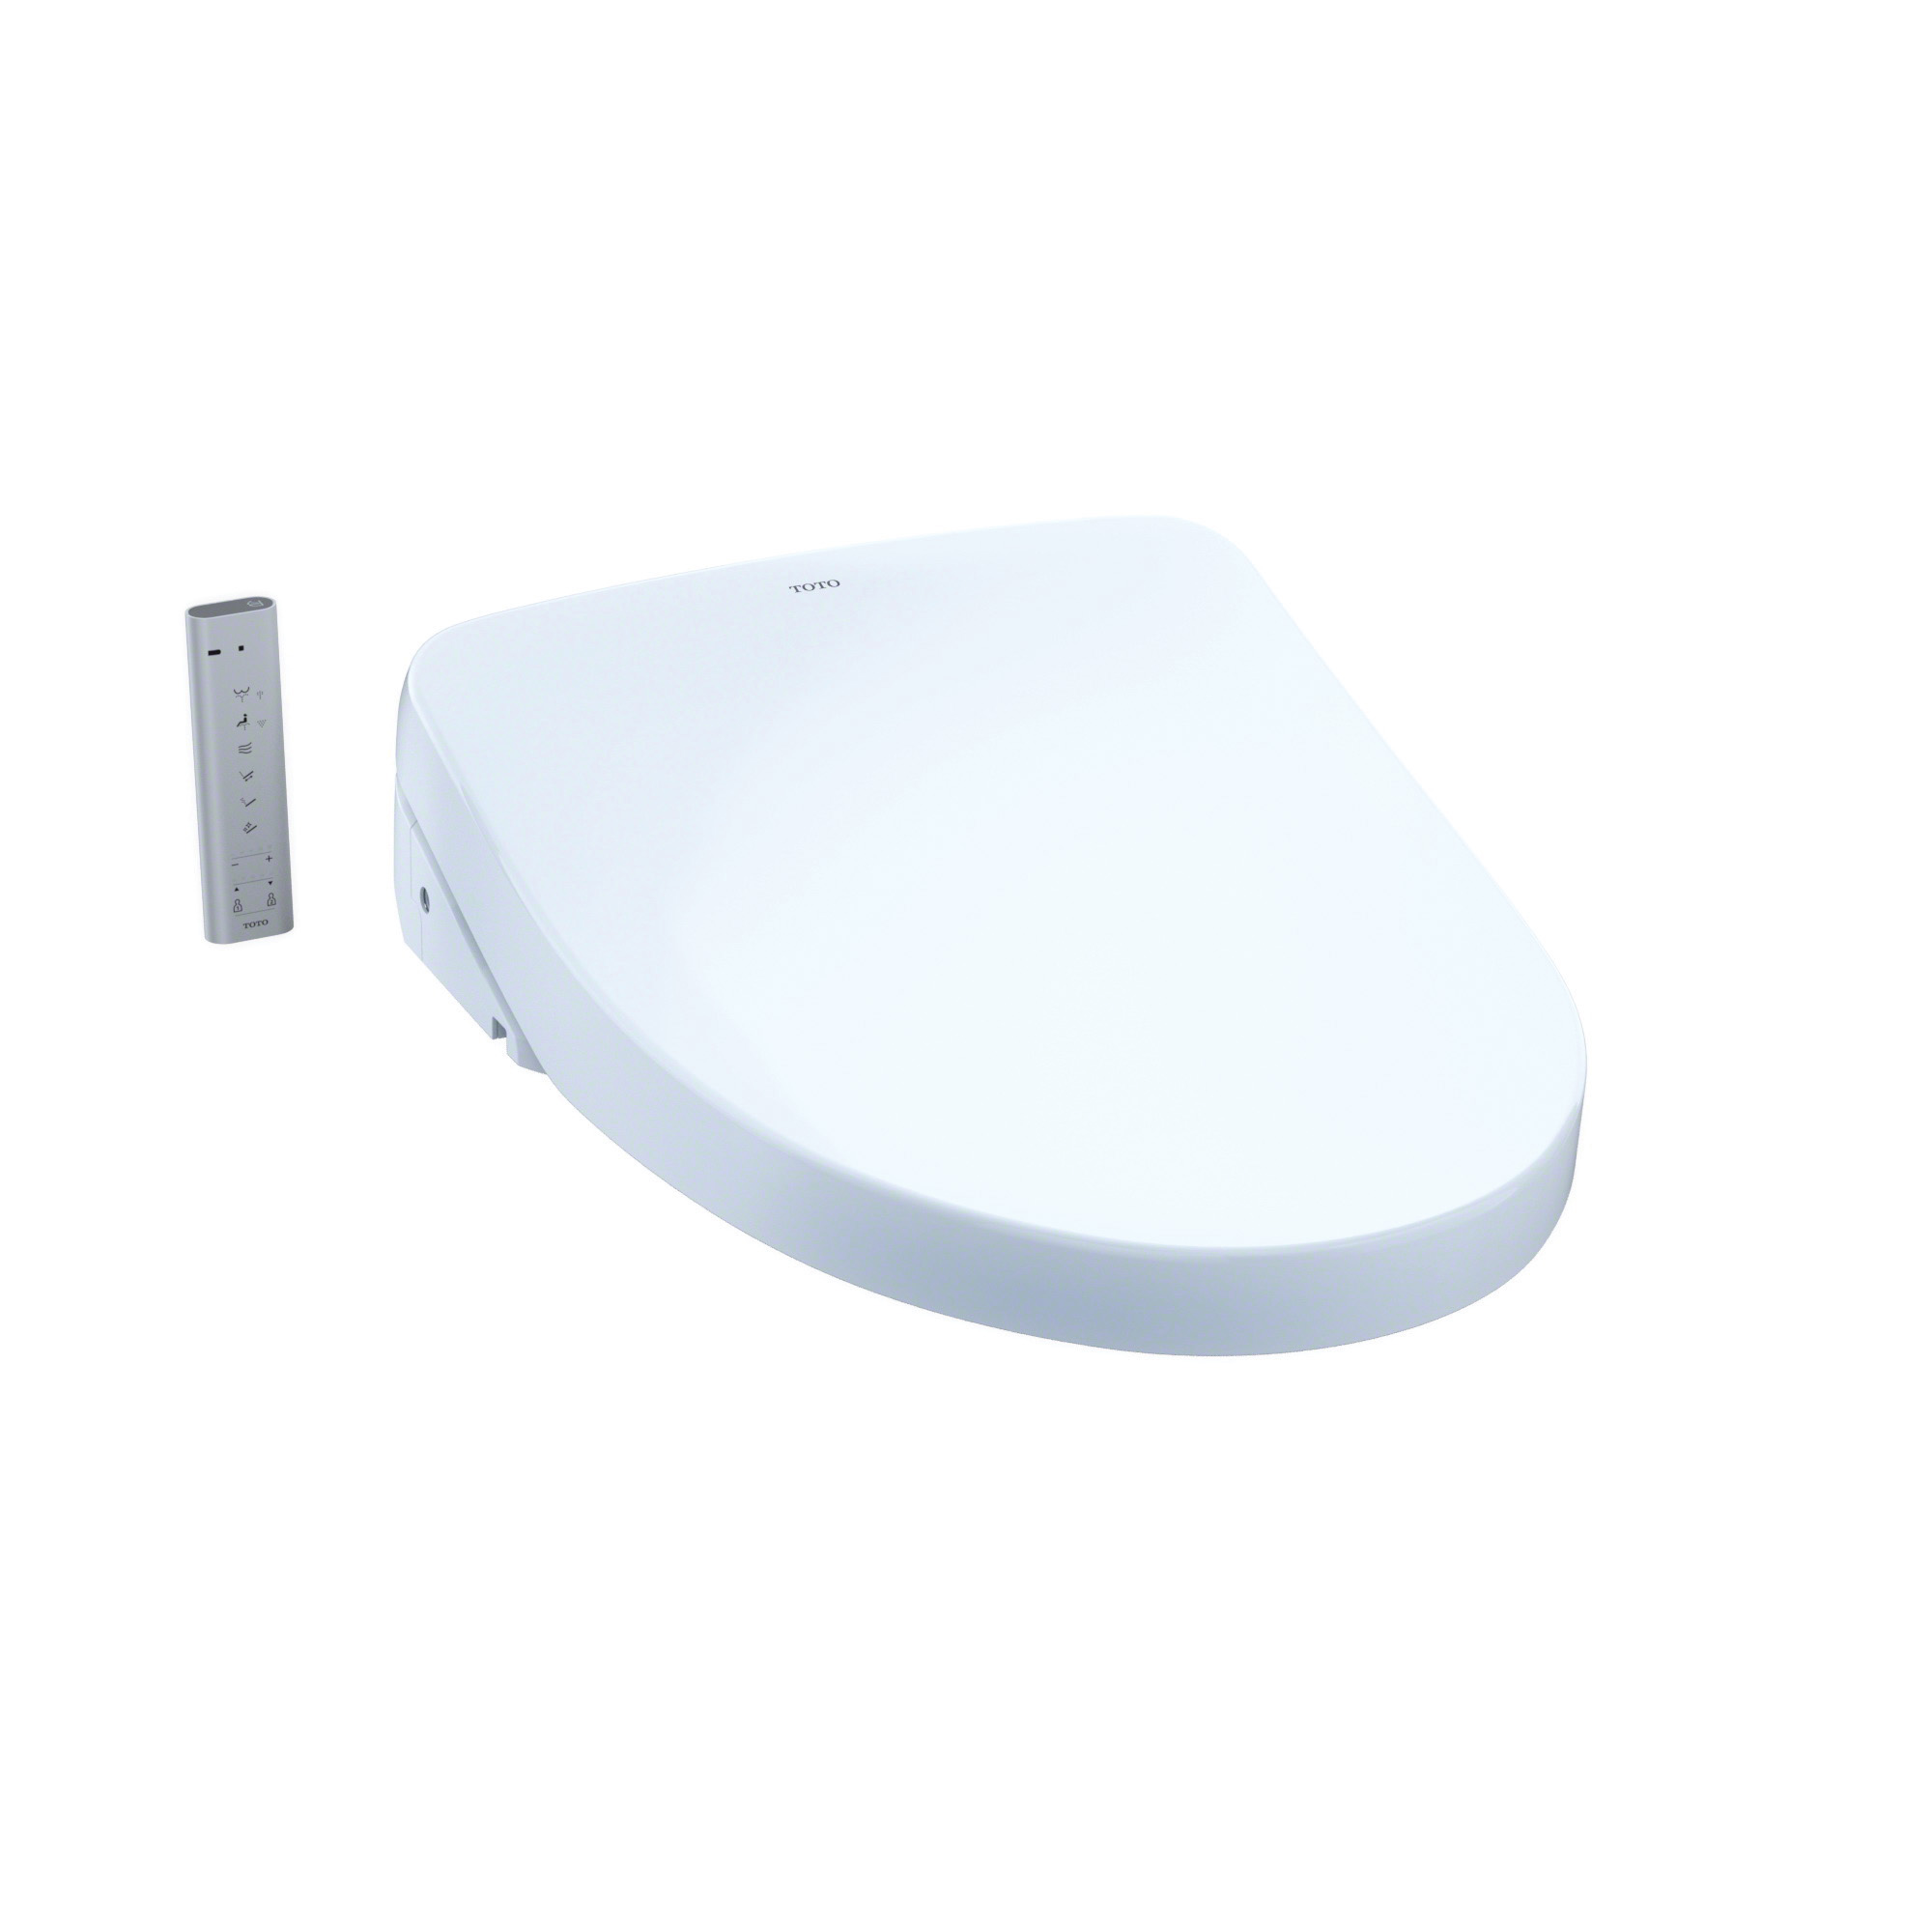 Toto® SW3056#01 Electronic Bidet Toilet Seat With ewater+® Technology, WASHLET® S550e, Elongated Front Bowl, Auto Open/Closed Front, Plastic, Cotton White, Import